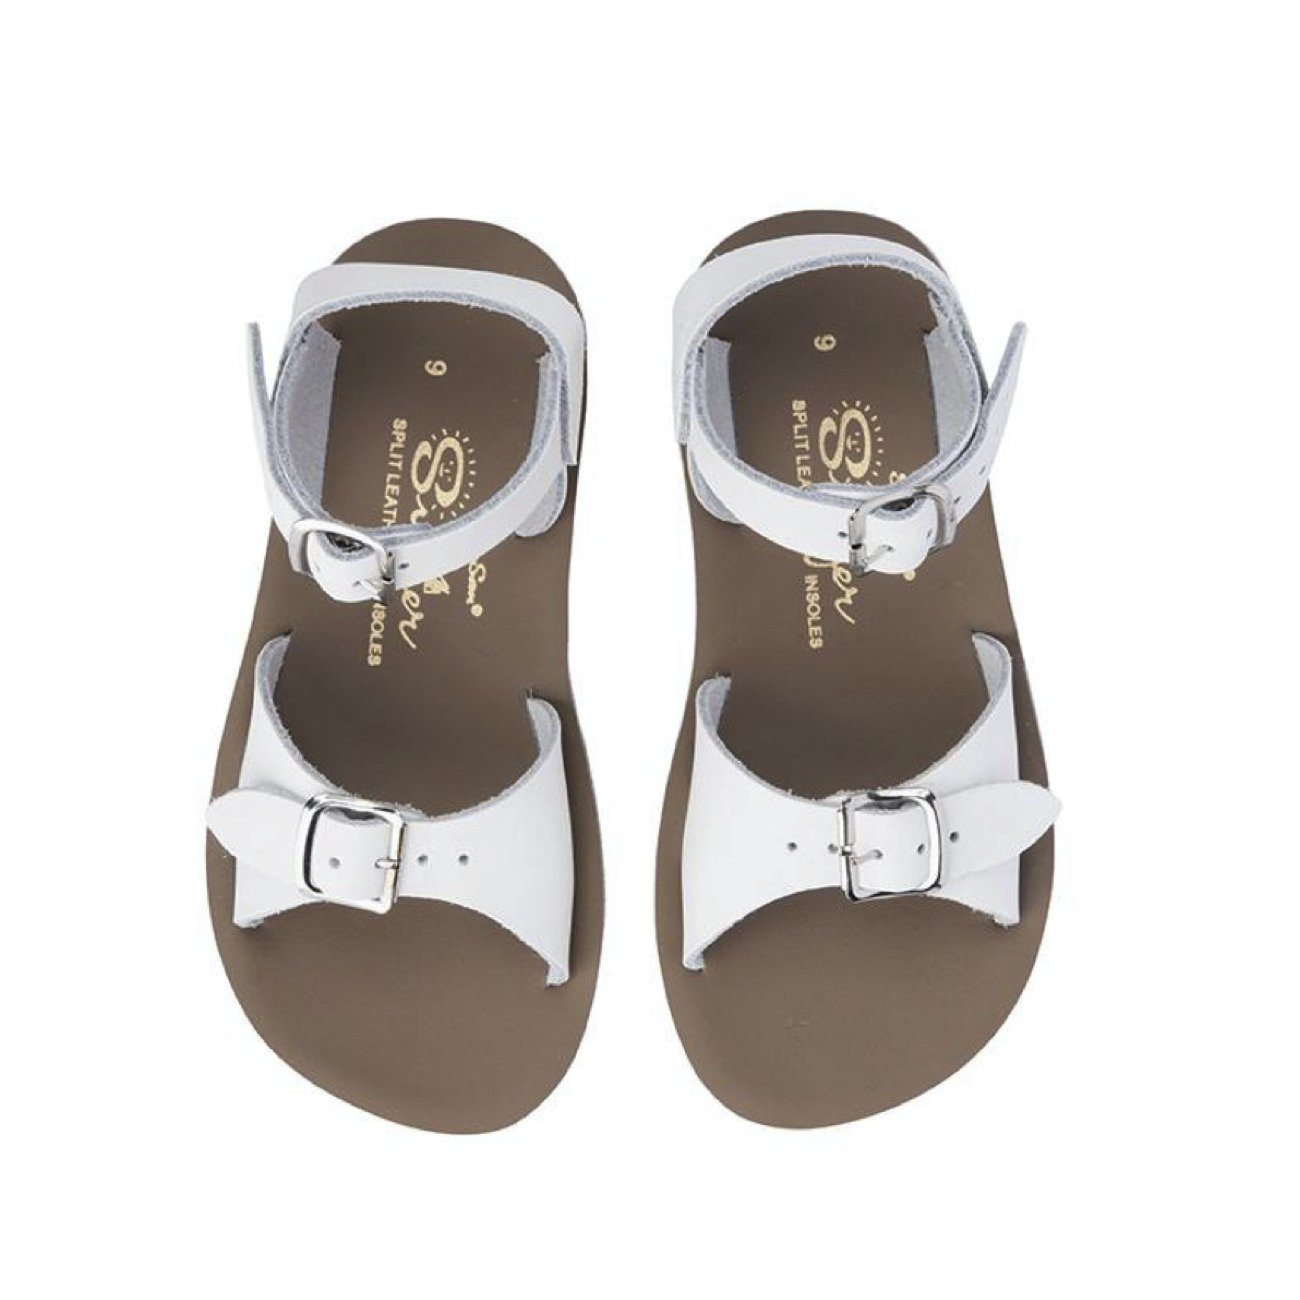 Salt Water Sandals, Sun-San Surfer, Child, White Sandals Salt Water Sandals White Child 9